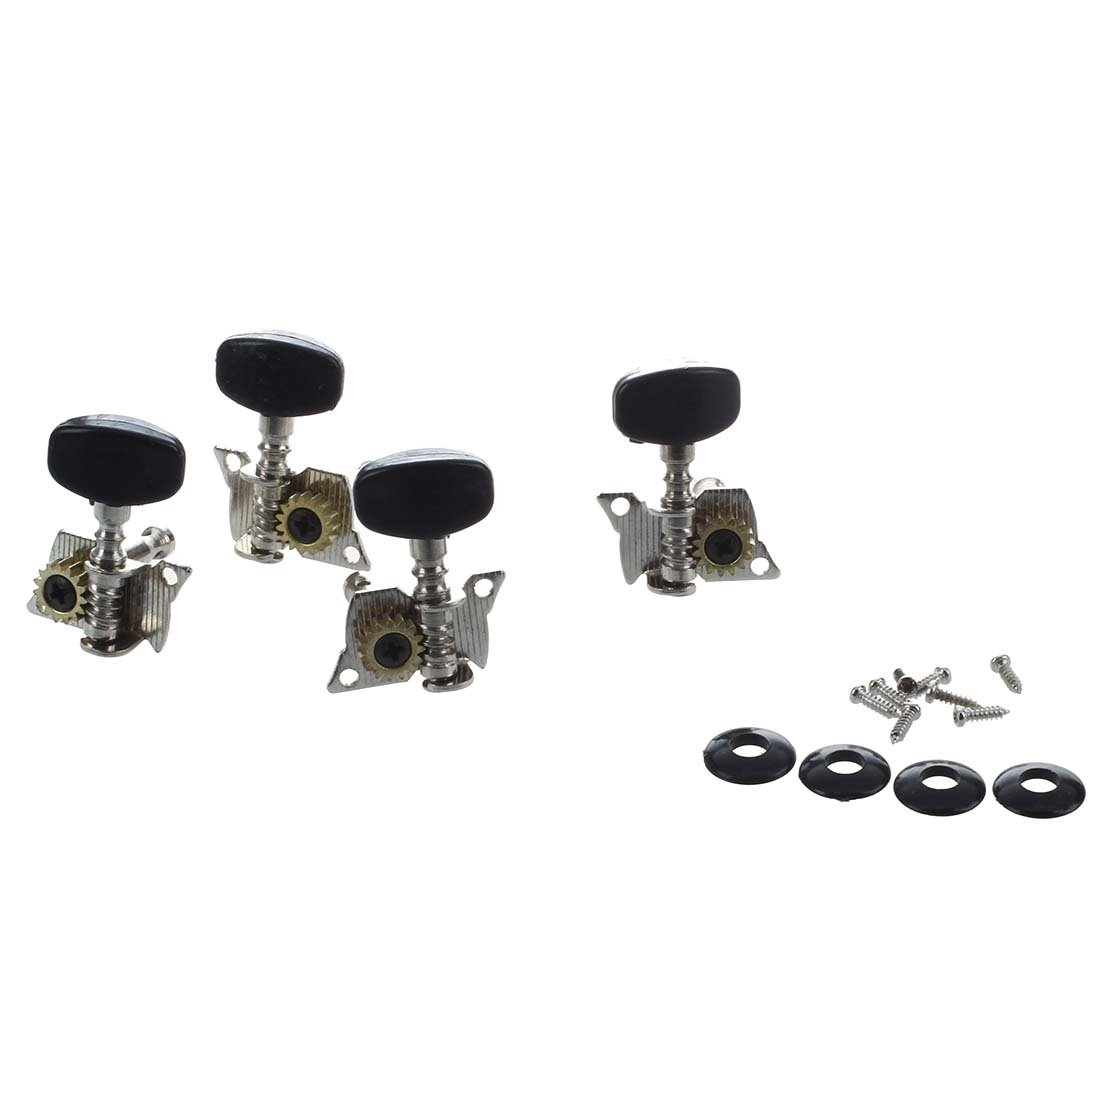 4Pcs Ukulele Guitar and Small 4 String Guitar Tuning Pegs Machine Heads 2R and 2L Silver and Black SODIAL(R) 018114